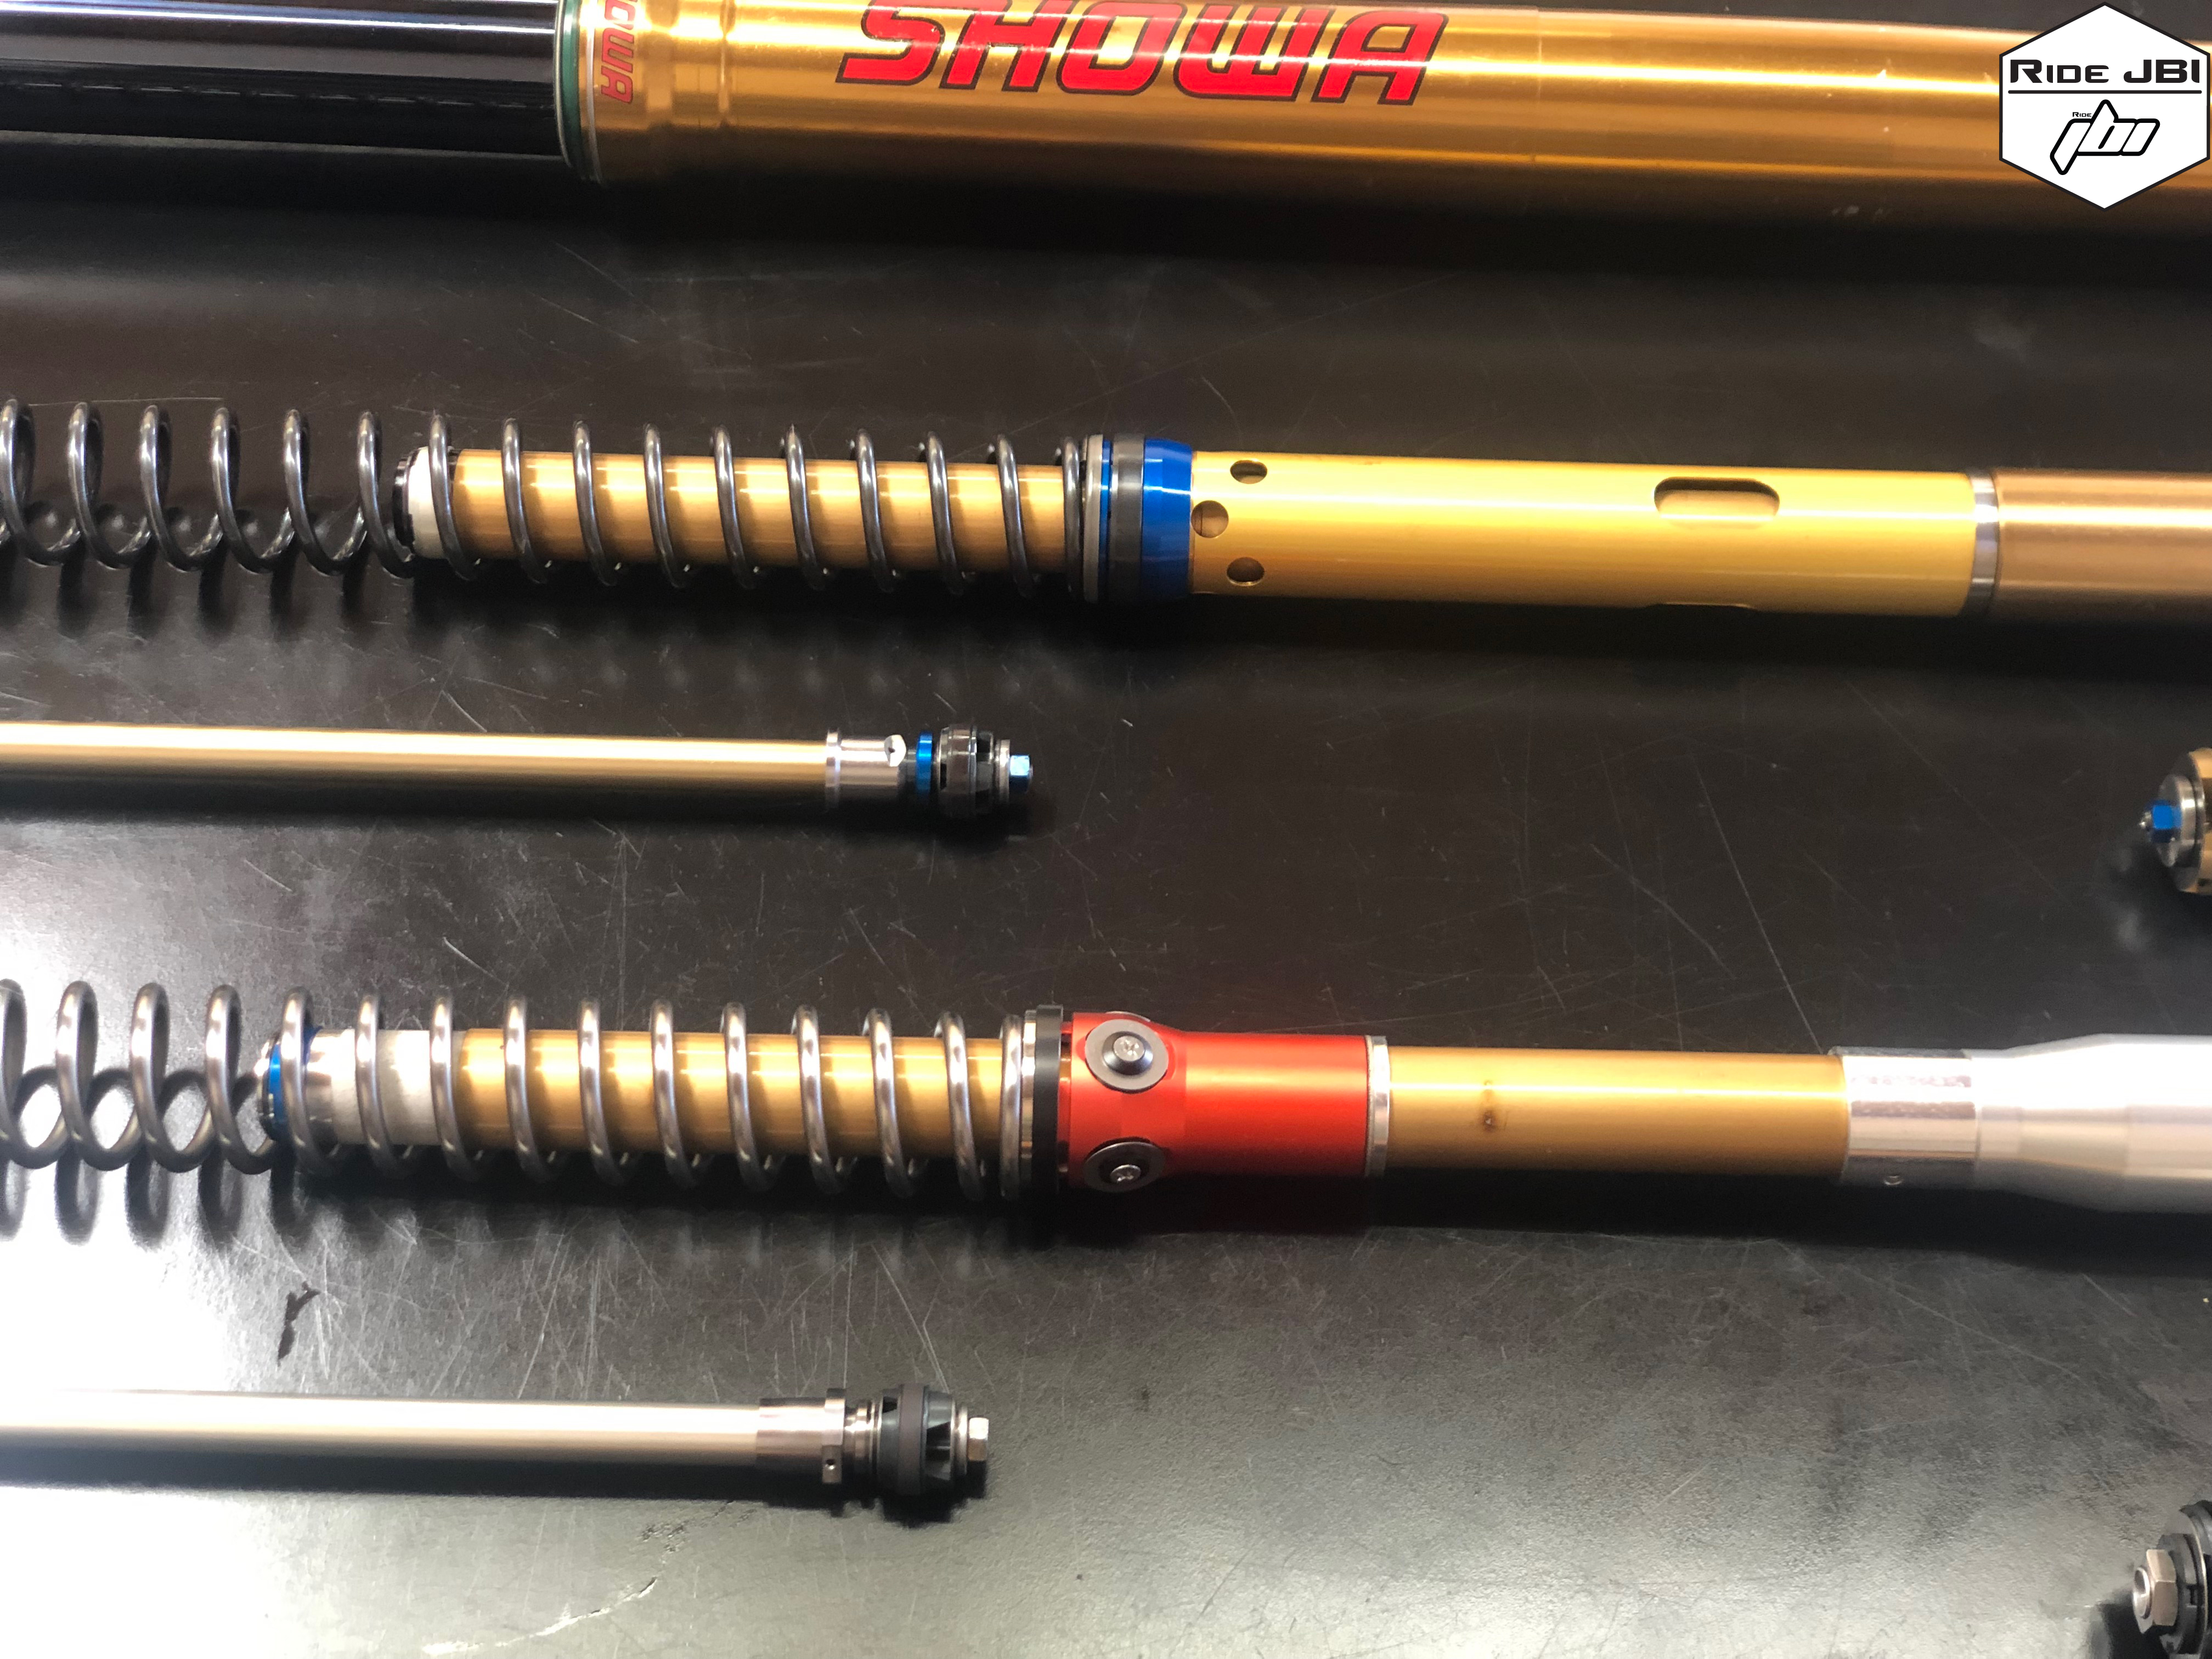 Showa A Kit 49mm Spring Fork next to Showa OEM 49mm Spring Fork